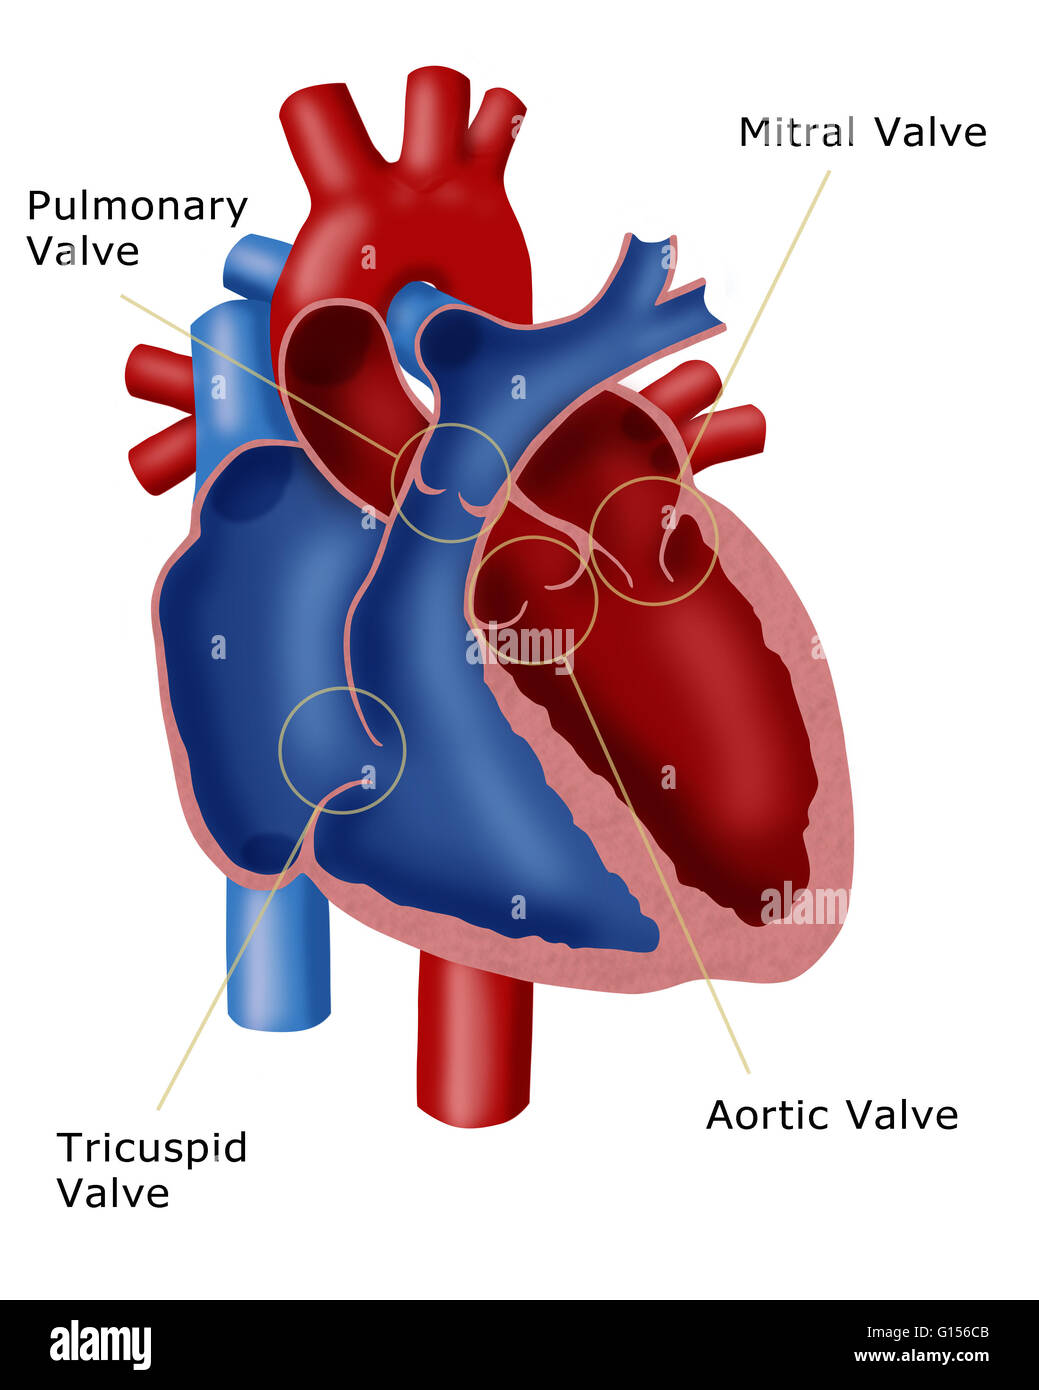 Illustration of a heart showing the four valves pulmonary valve illustration of a heart showing the four valves pulmonary valve mitral valve tricuspid valve and the aortic valve ccuart Gallery